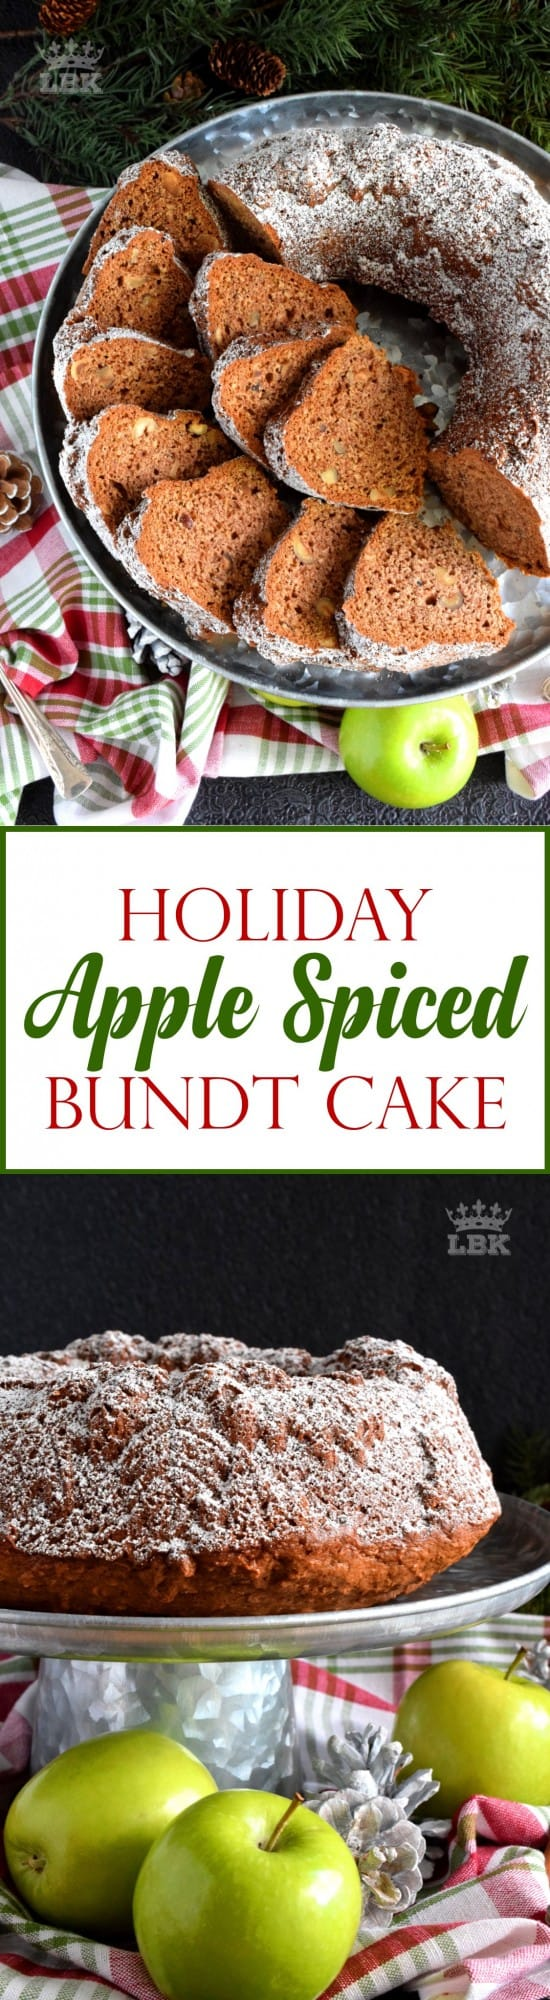 Holiday Apple Spiced Bundt Cake - Chopped apples and pecans, combined with holiday spices, make this bundt cake a perfectly rich and moist Christmastime dessert! #bundt #bundtbakers #cake #apple #spiced #christmas #holiday